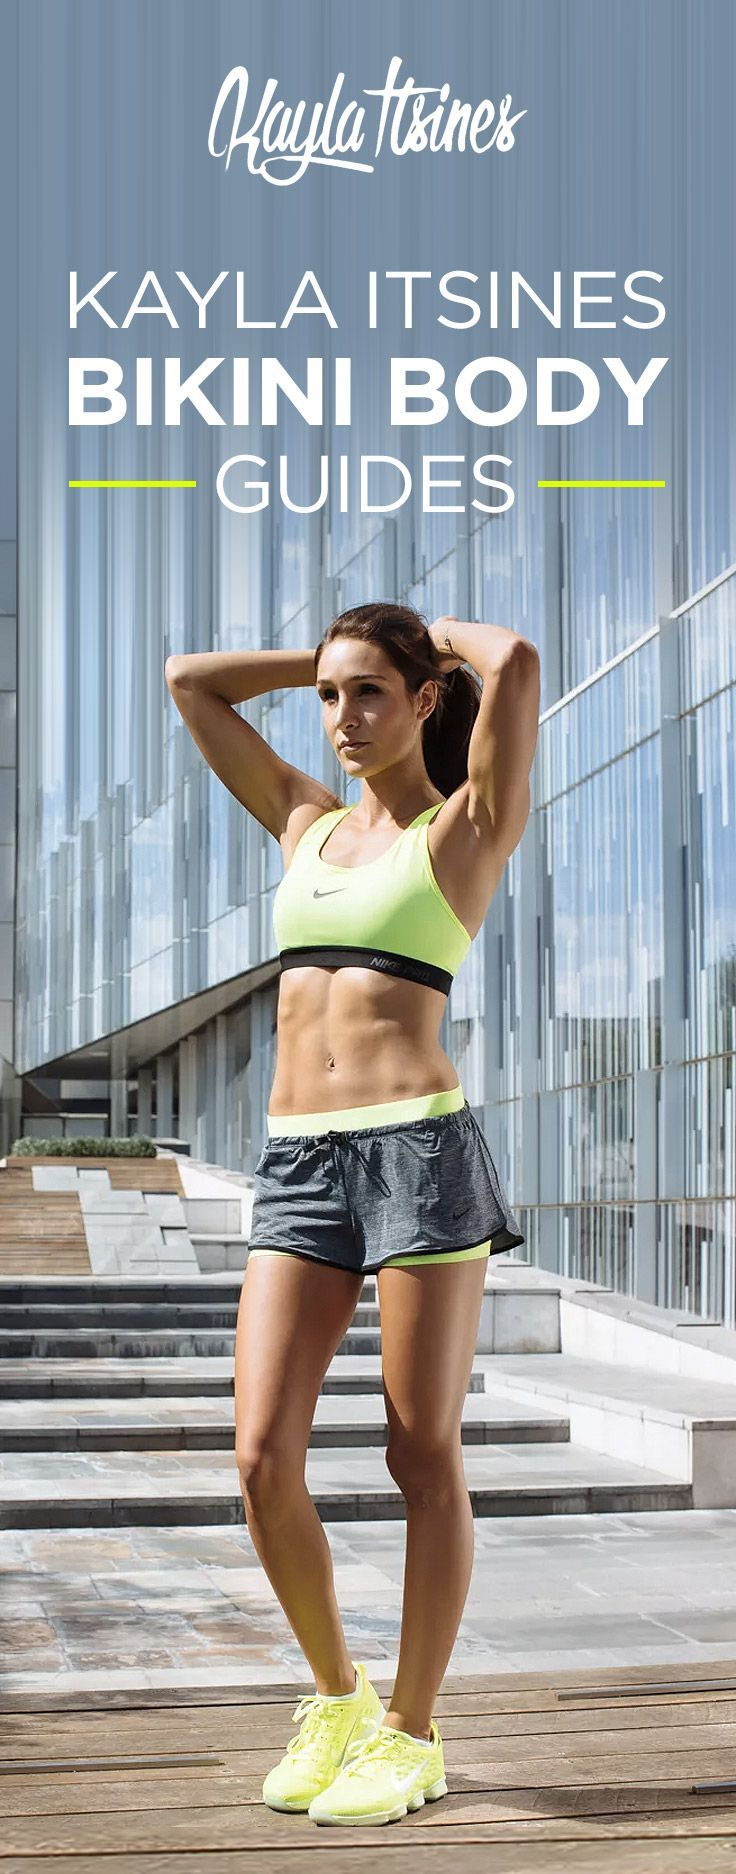 The 25 best kayla itsines review ideas on pinterest kayla kayla itsines coupon save 12 mar 2018 works fandeluxe Image collections